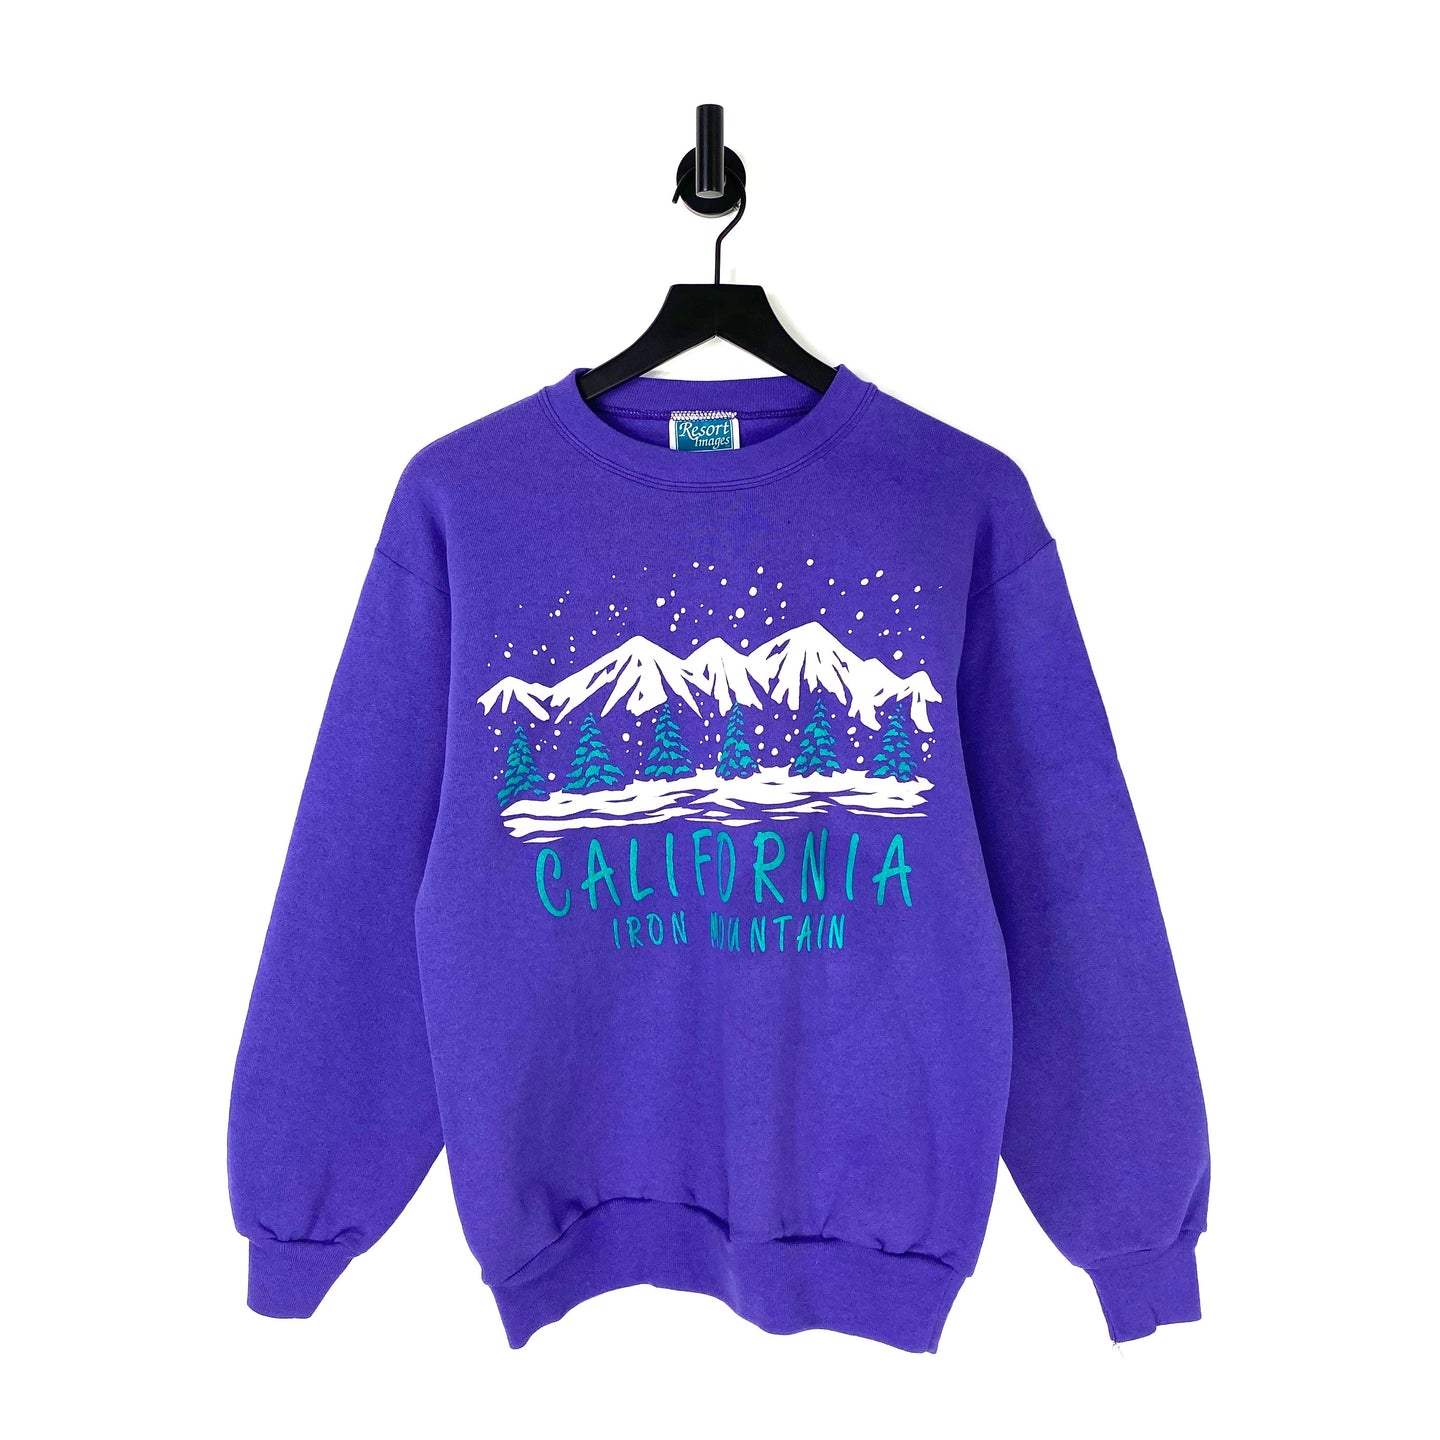 90s California Iron Mountain Sweatshirt - M